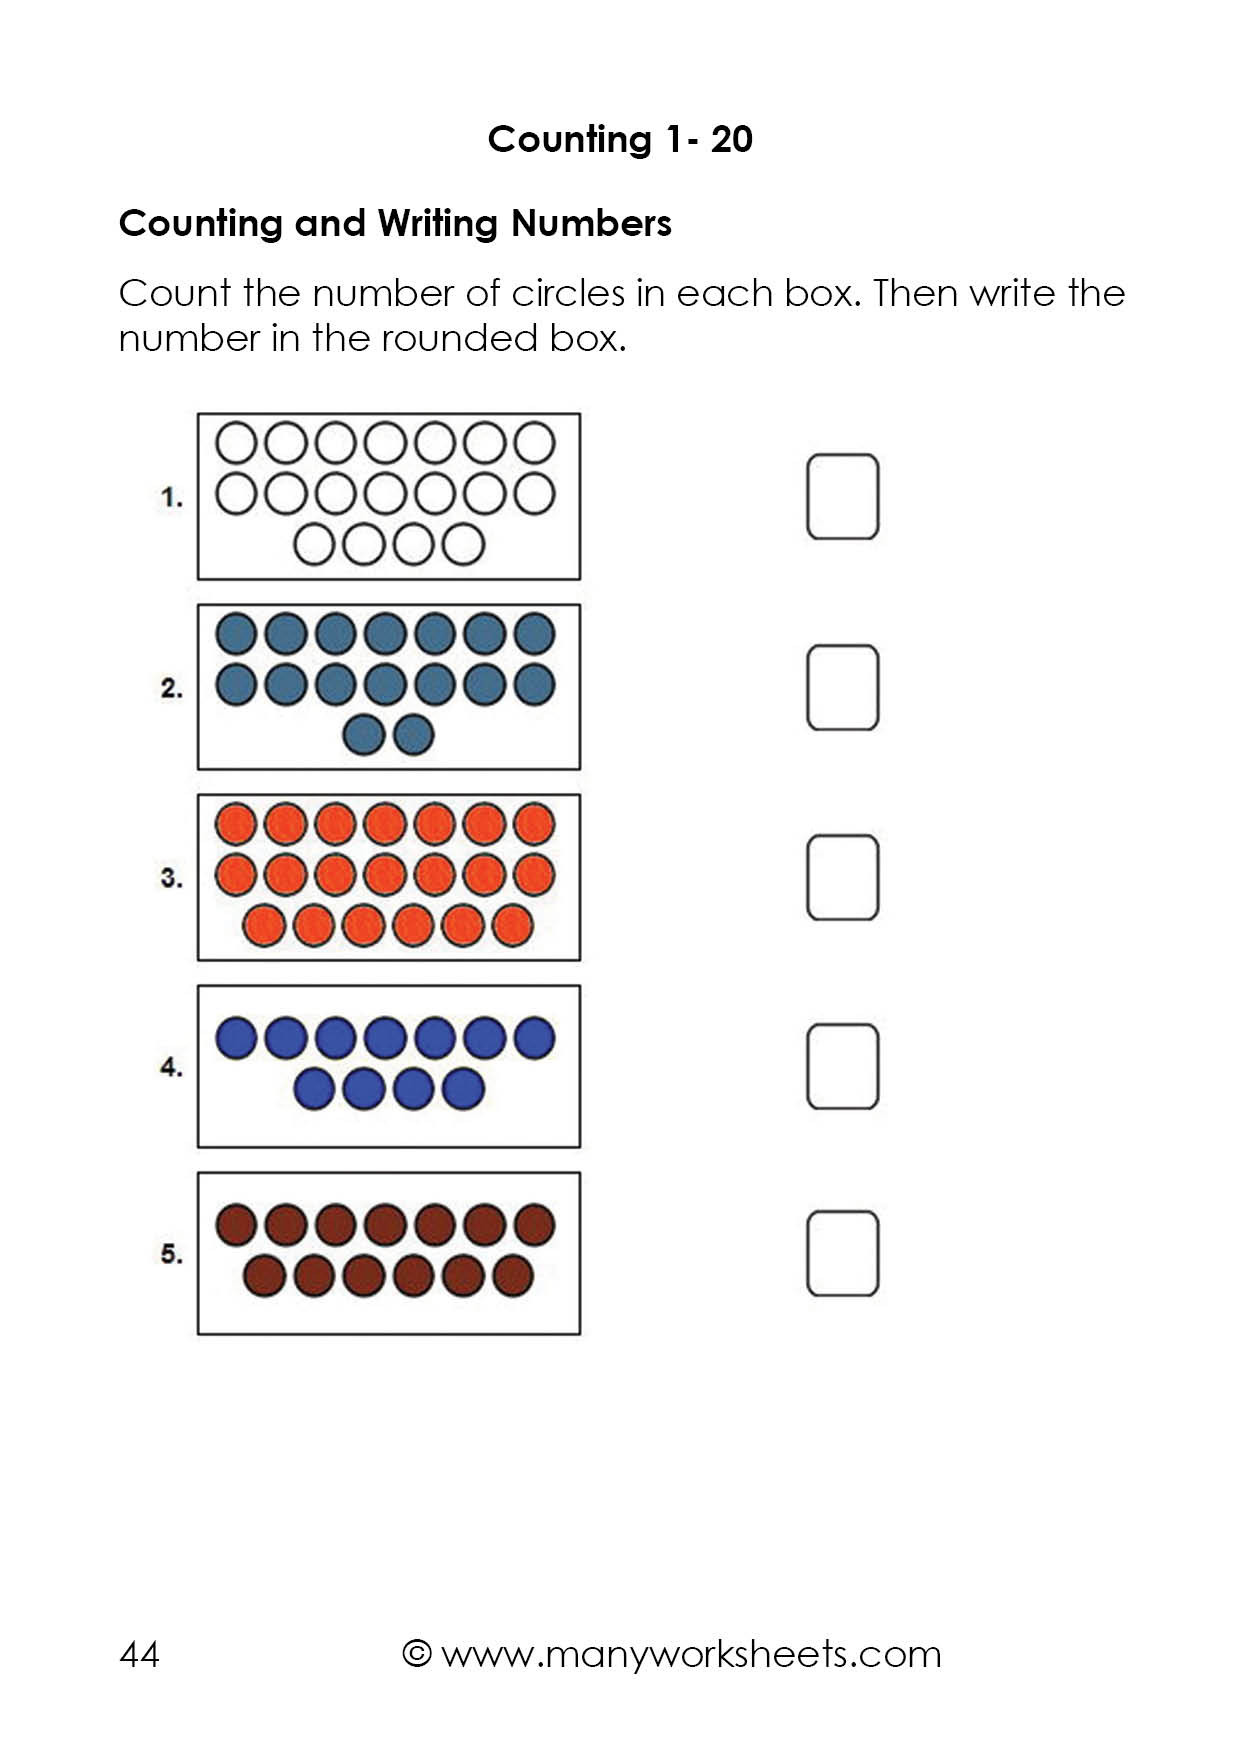 Writing Number Worksheets 1 20 Counting Dots to 20 and Writing Numbers